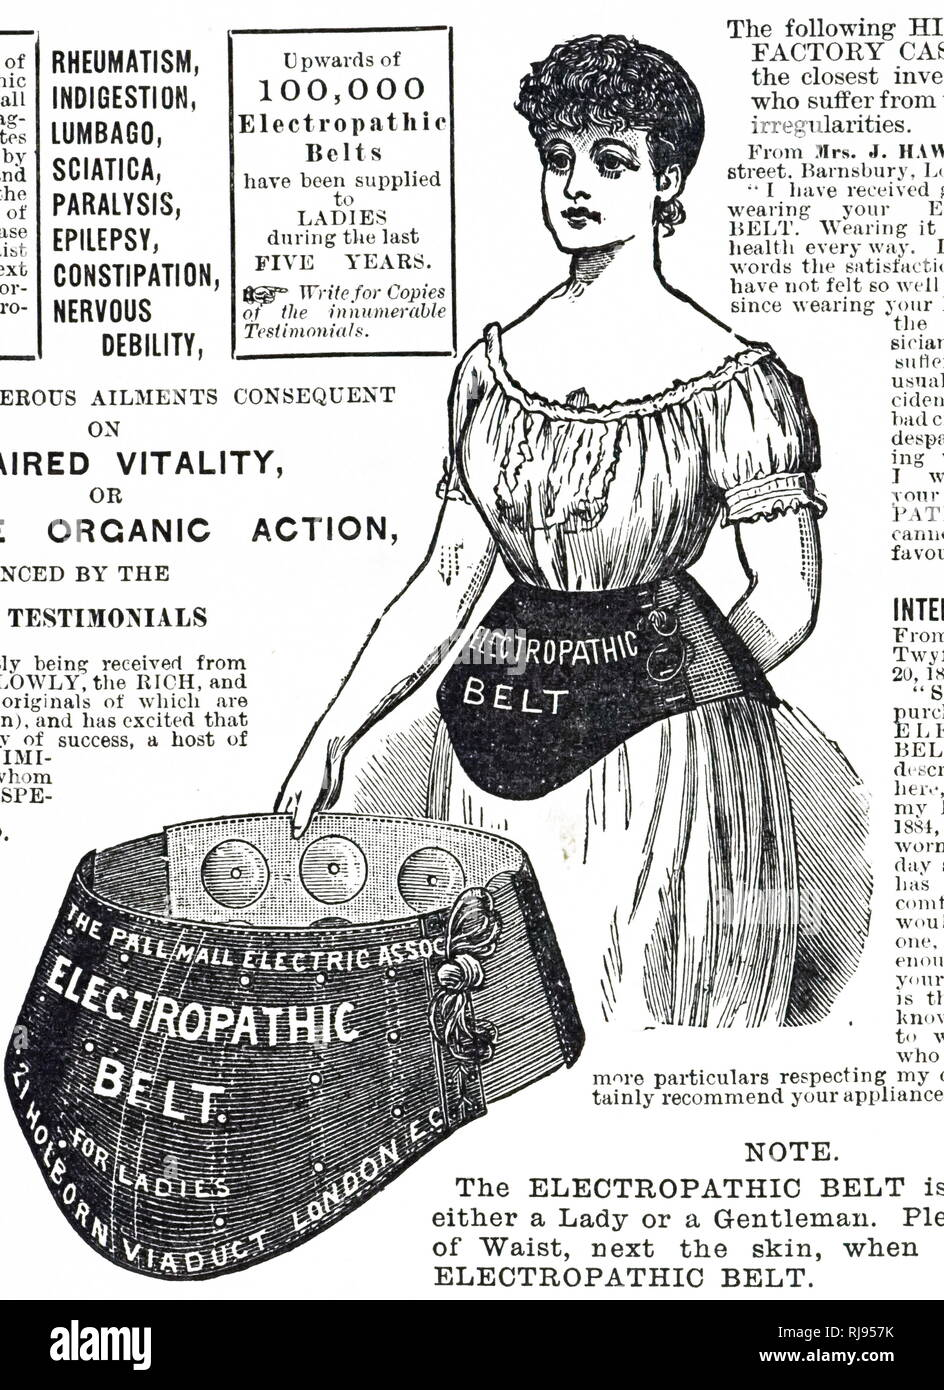 Advertisement for an electropathic belt to tighten the waist of both women and men. Dated 19th century - Stock Image